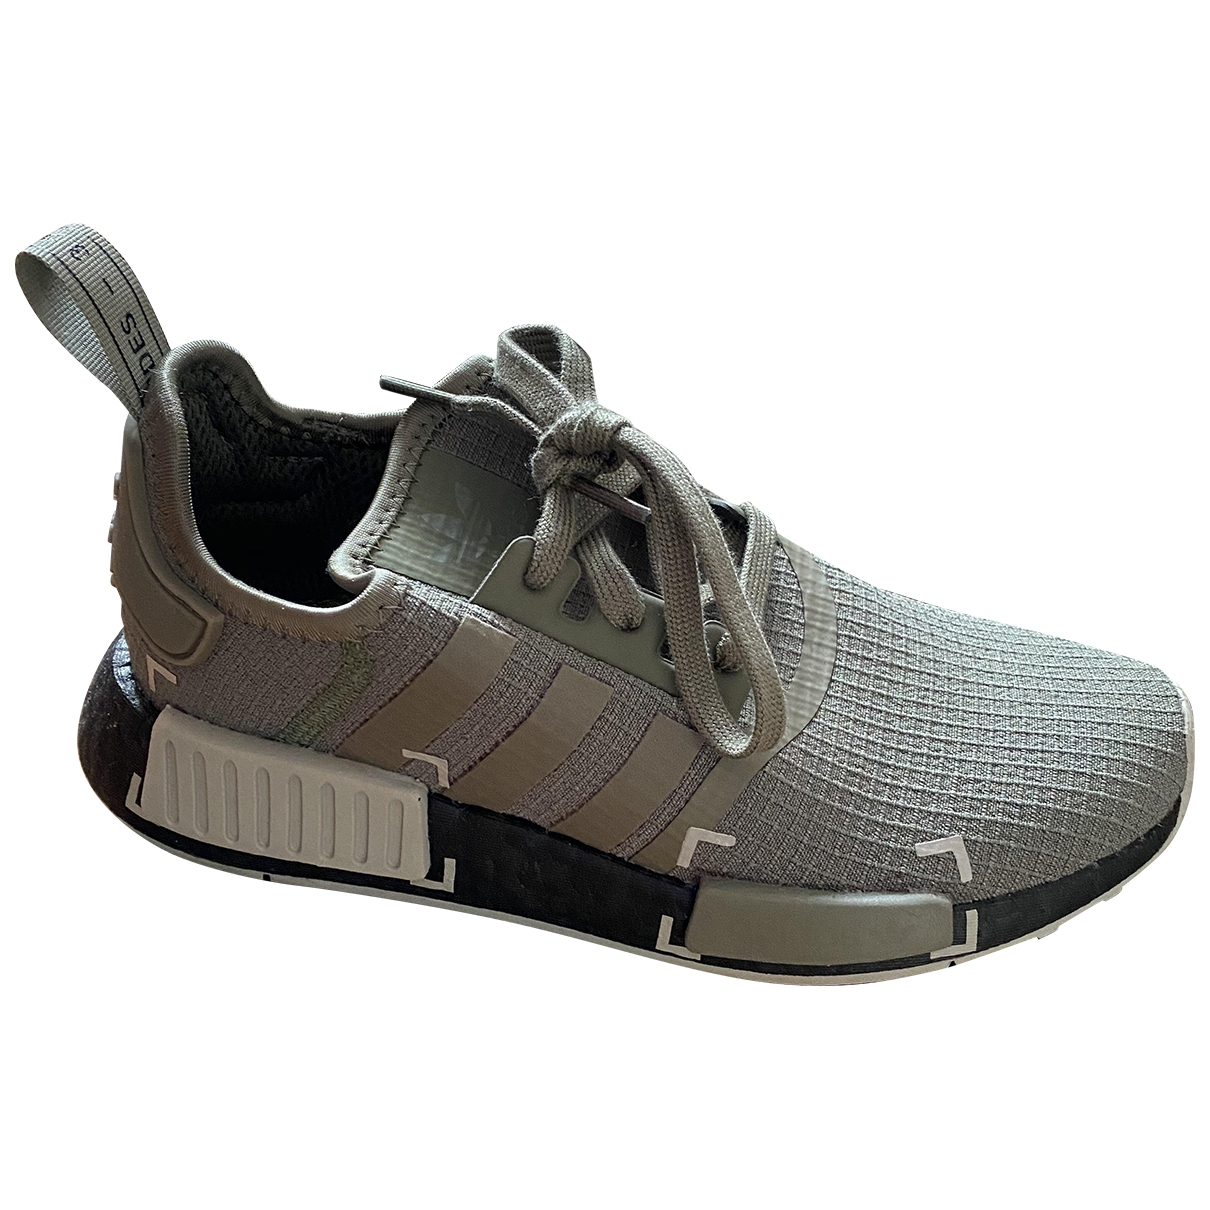 Adidas Nmd Khaki Cloth Trainers for Women 38 EU